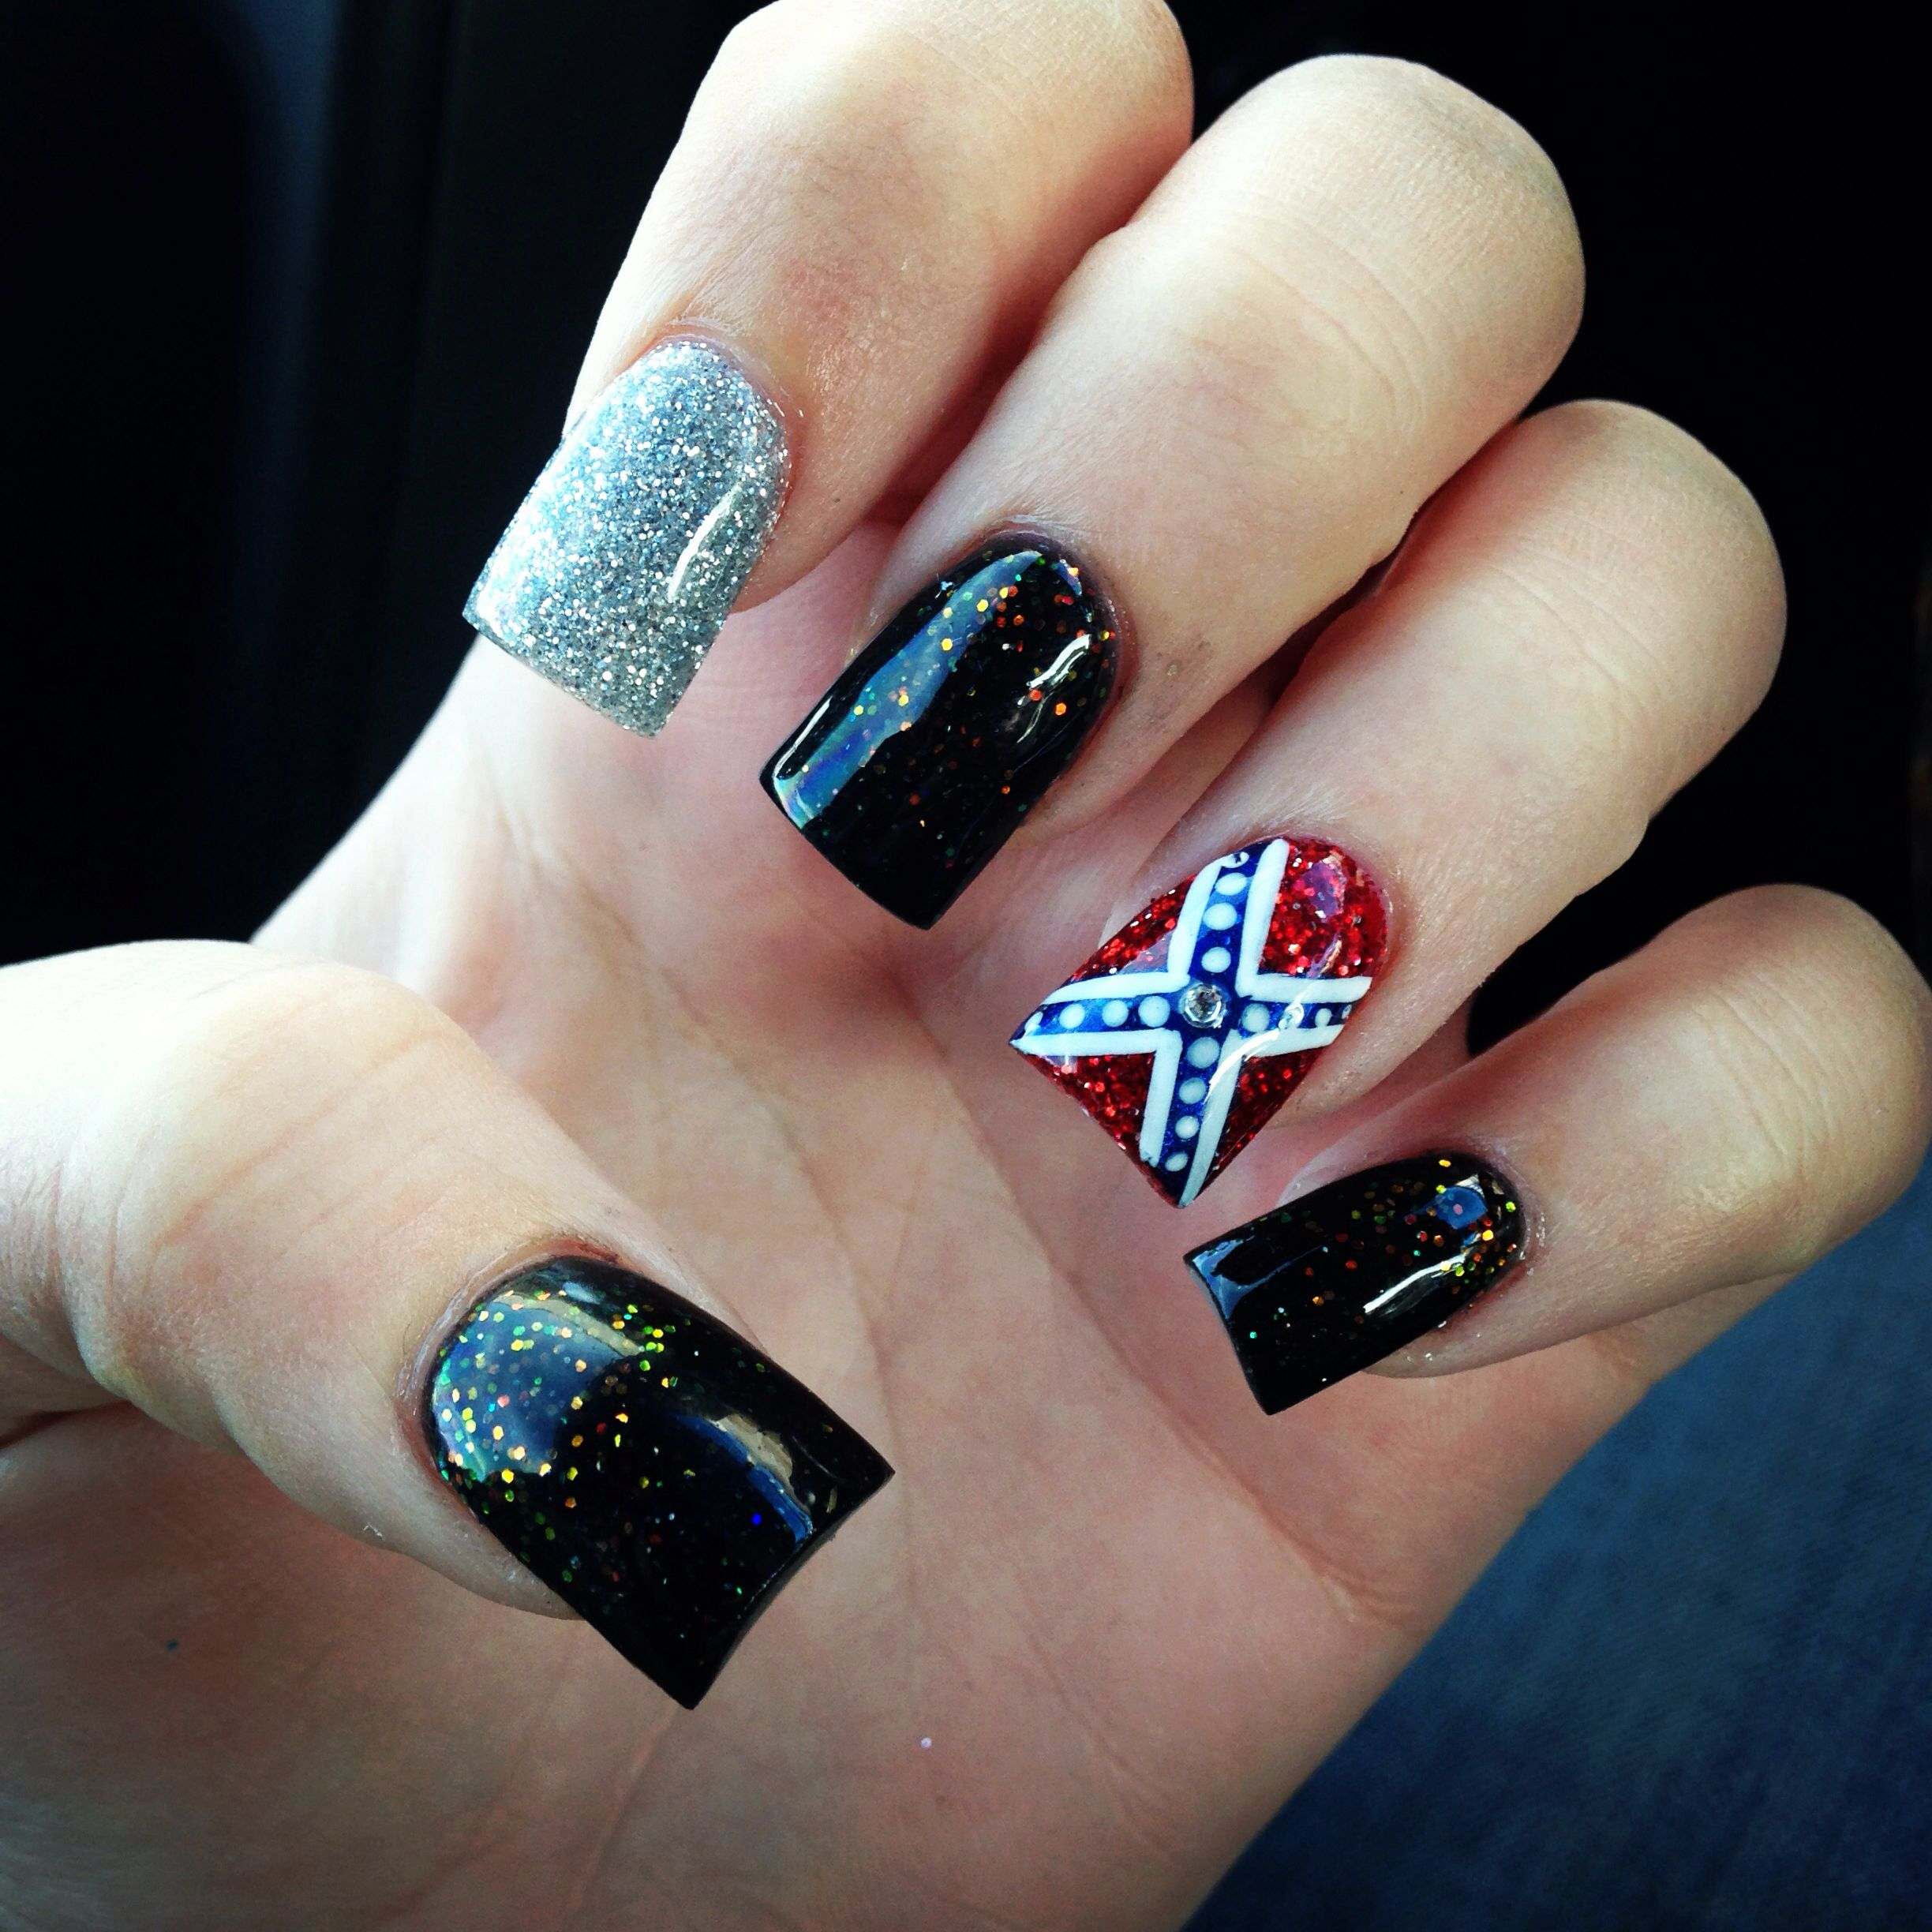 Confederate flag nails anything else pinterest flag nails the rebel flag with 13 stars but the rest of the nails solid black prinsesfo Image collections